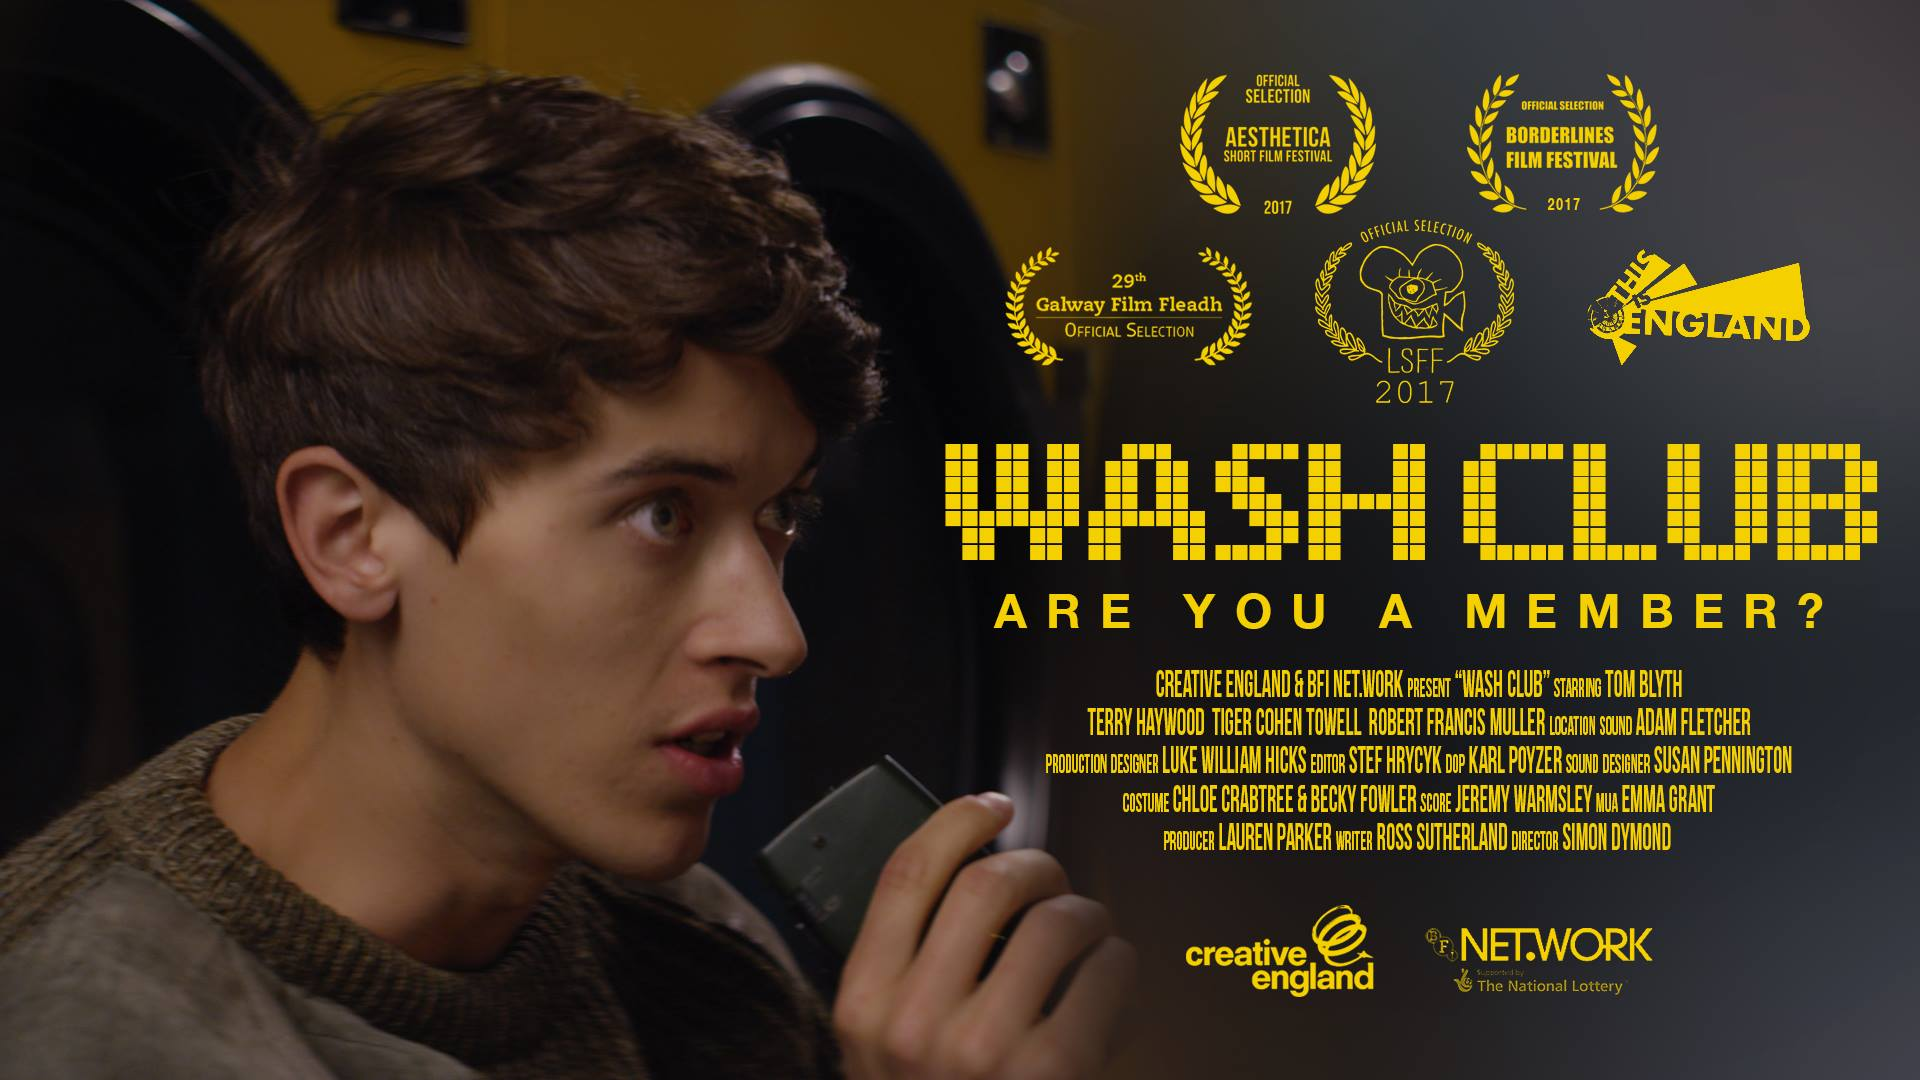 One of my Production stills used as the poster for the short film WashClub!